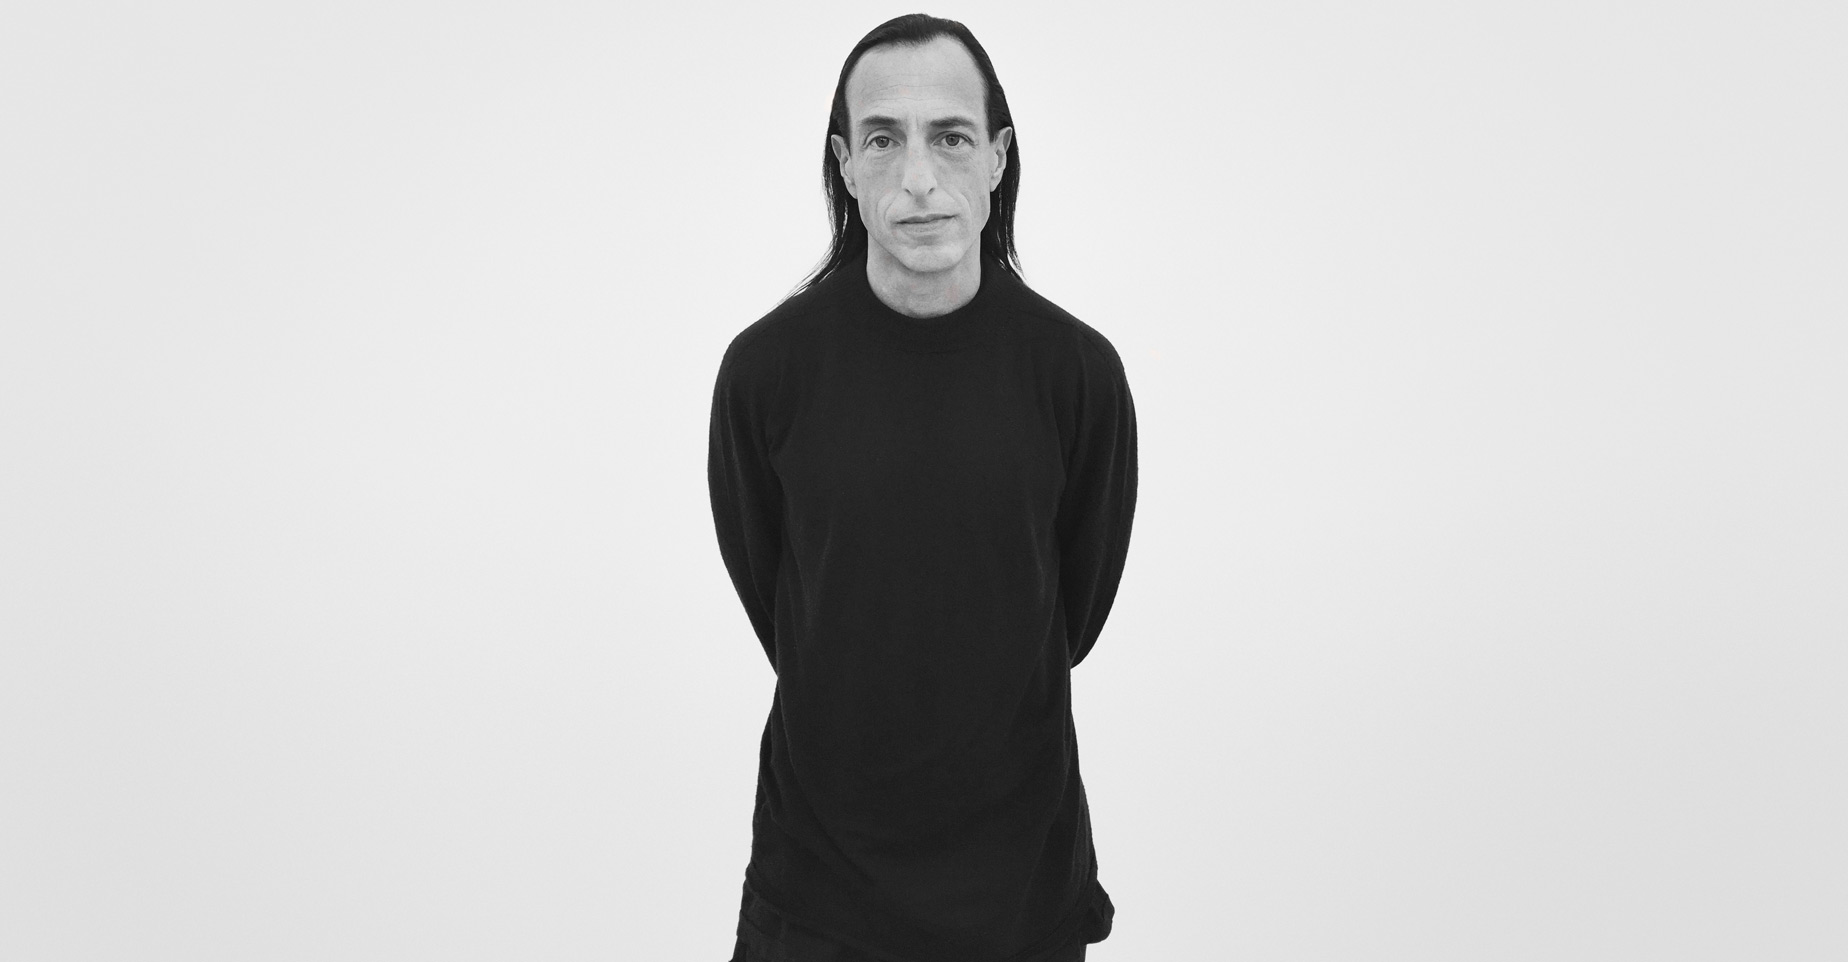 The 2017 CFDA Awards Nominees Include Rick Owens and Virgil Abloh